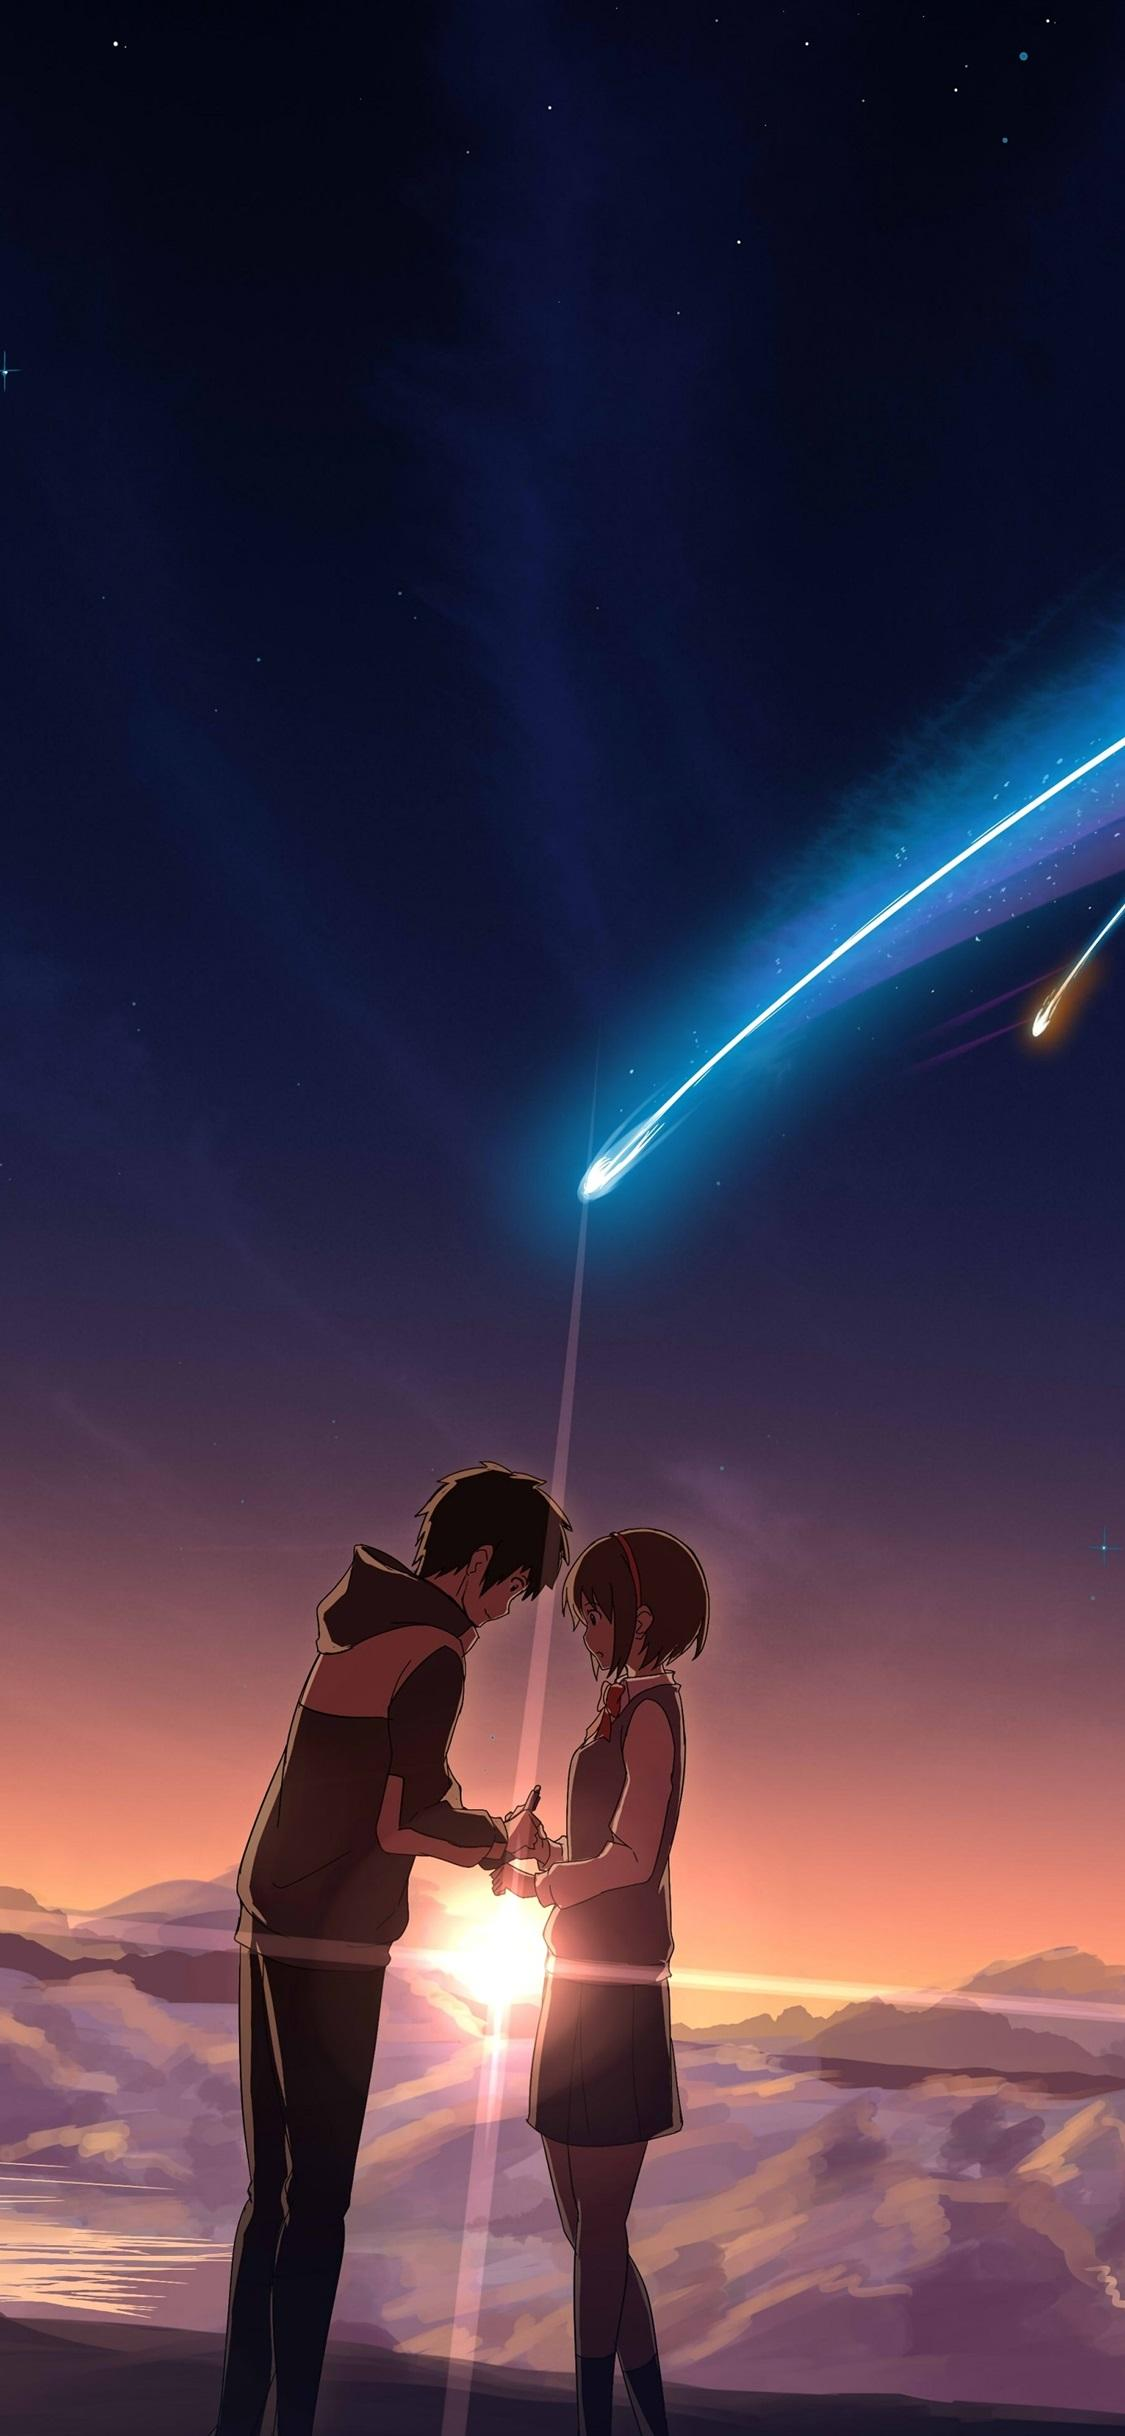 Your Name, beautiful meteor 1125x2436 iPhone XS/X wallpapers